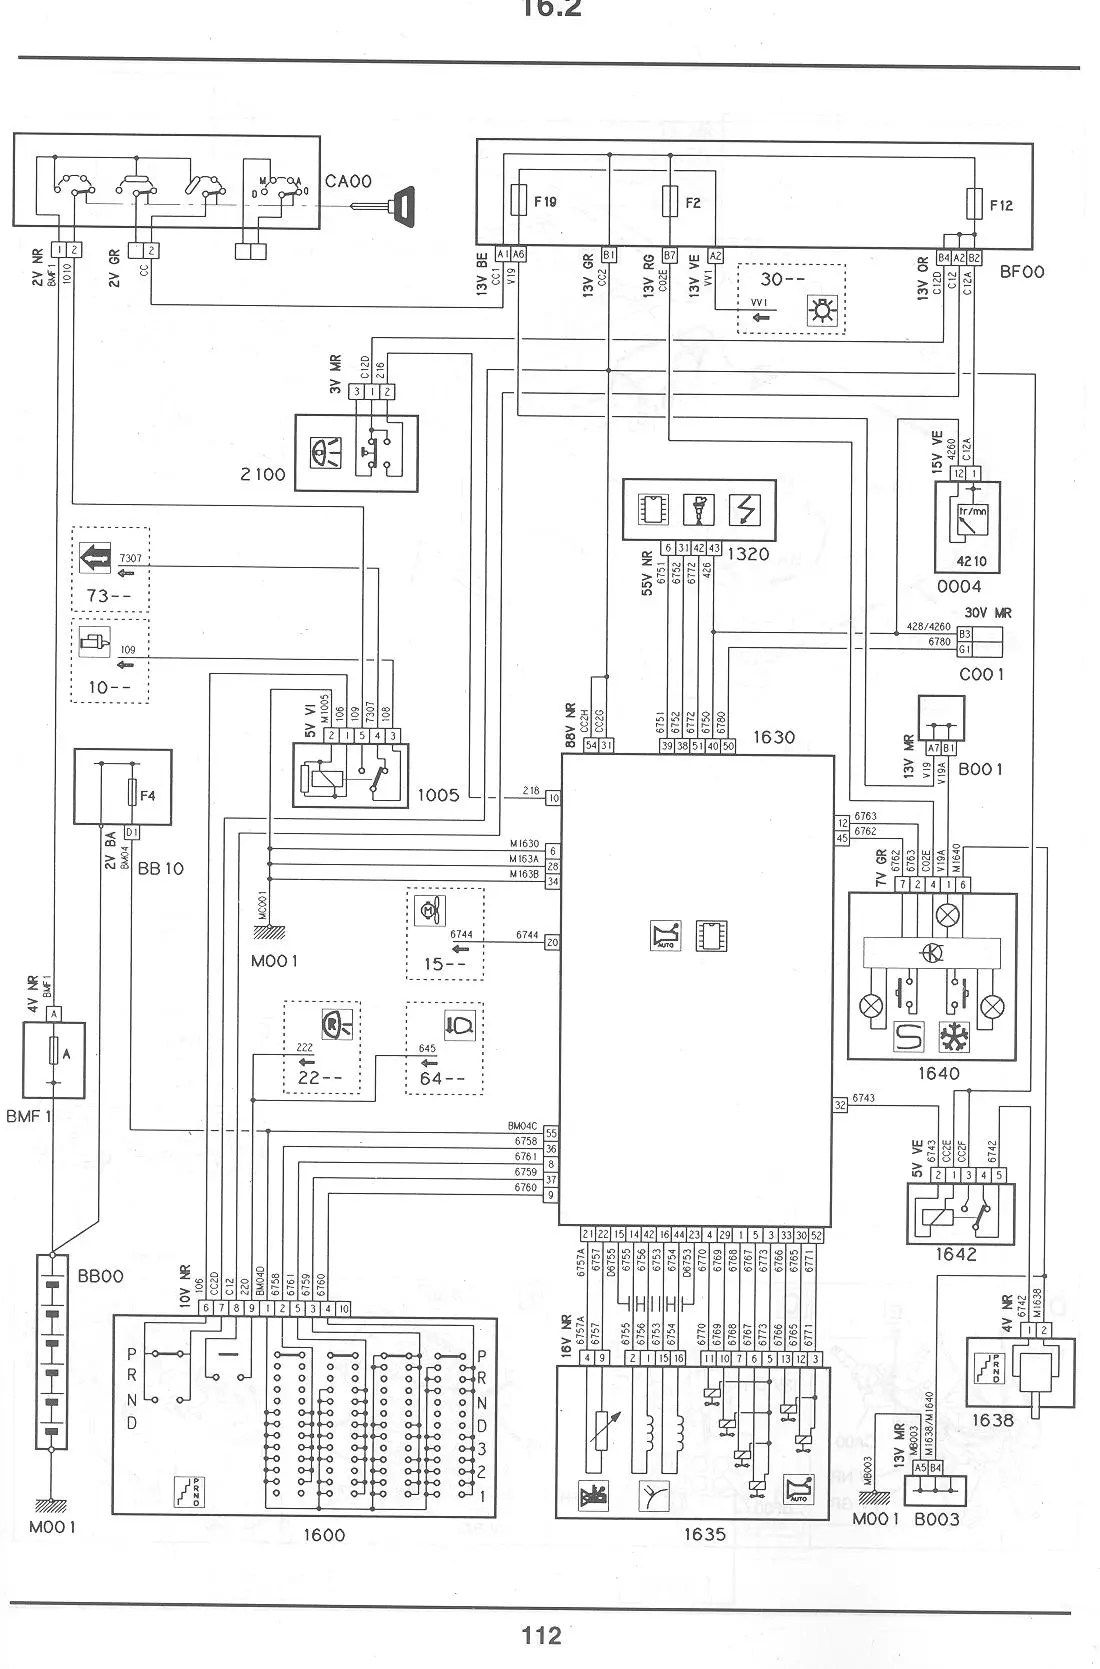 4hp20mk1cct?resize=665%2C1009 citroen xsara picasso wiring diagram citroen c2 wiring diagram pdf at gsmx.co